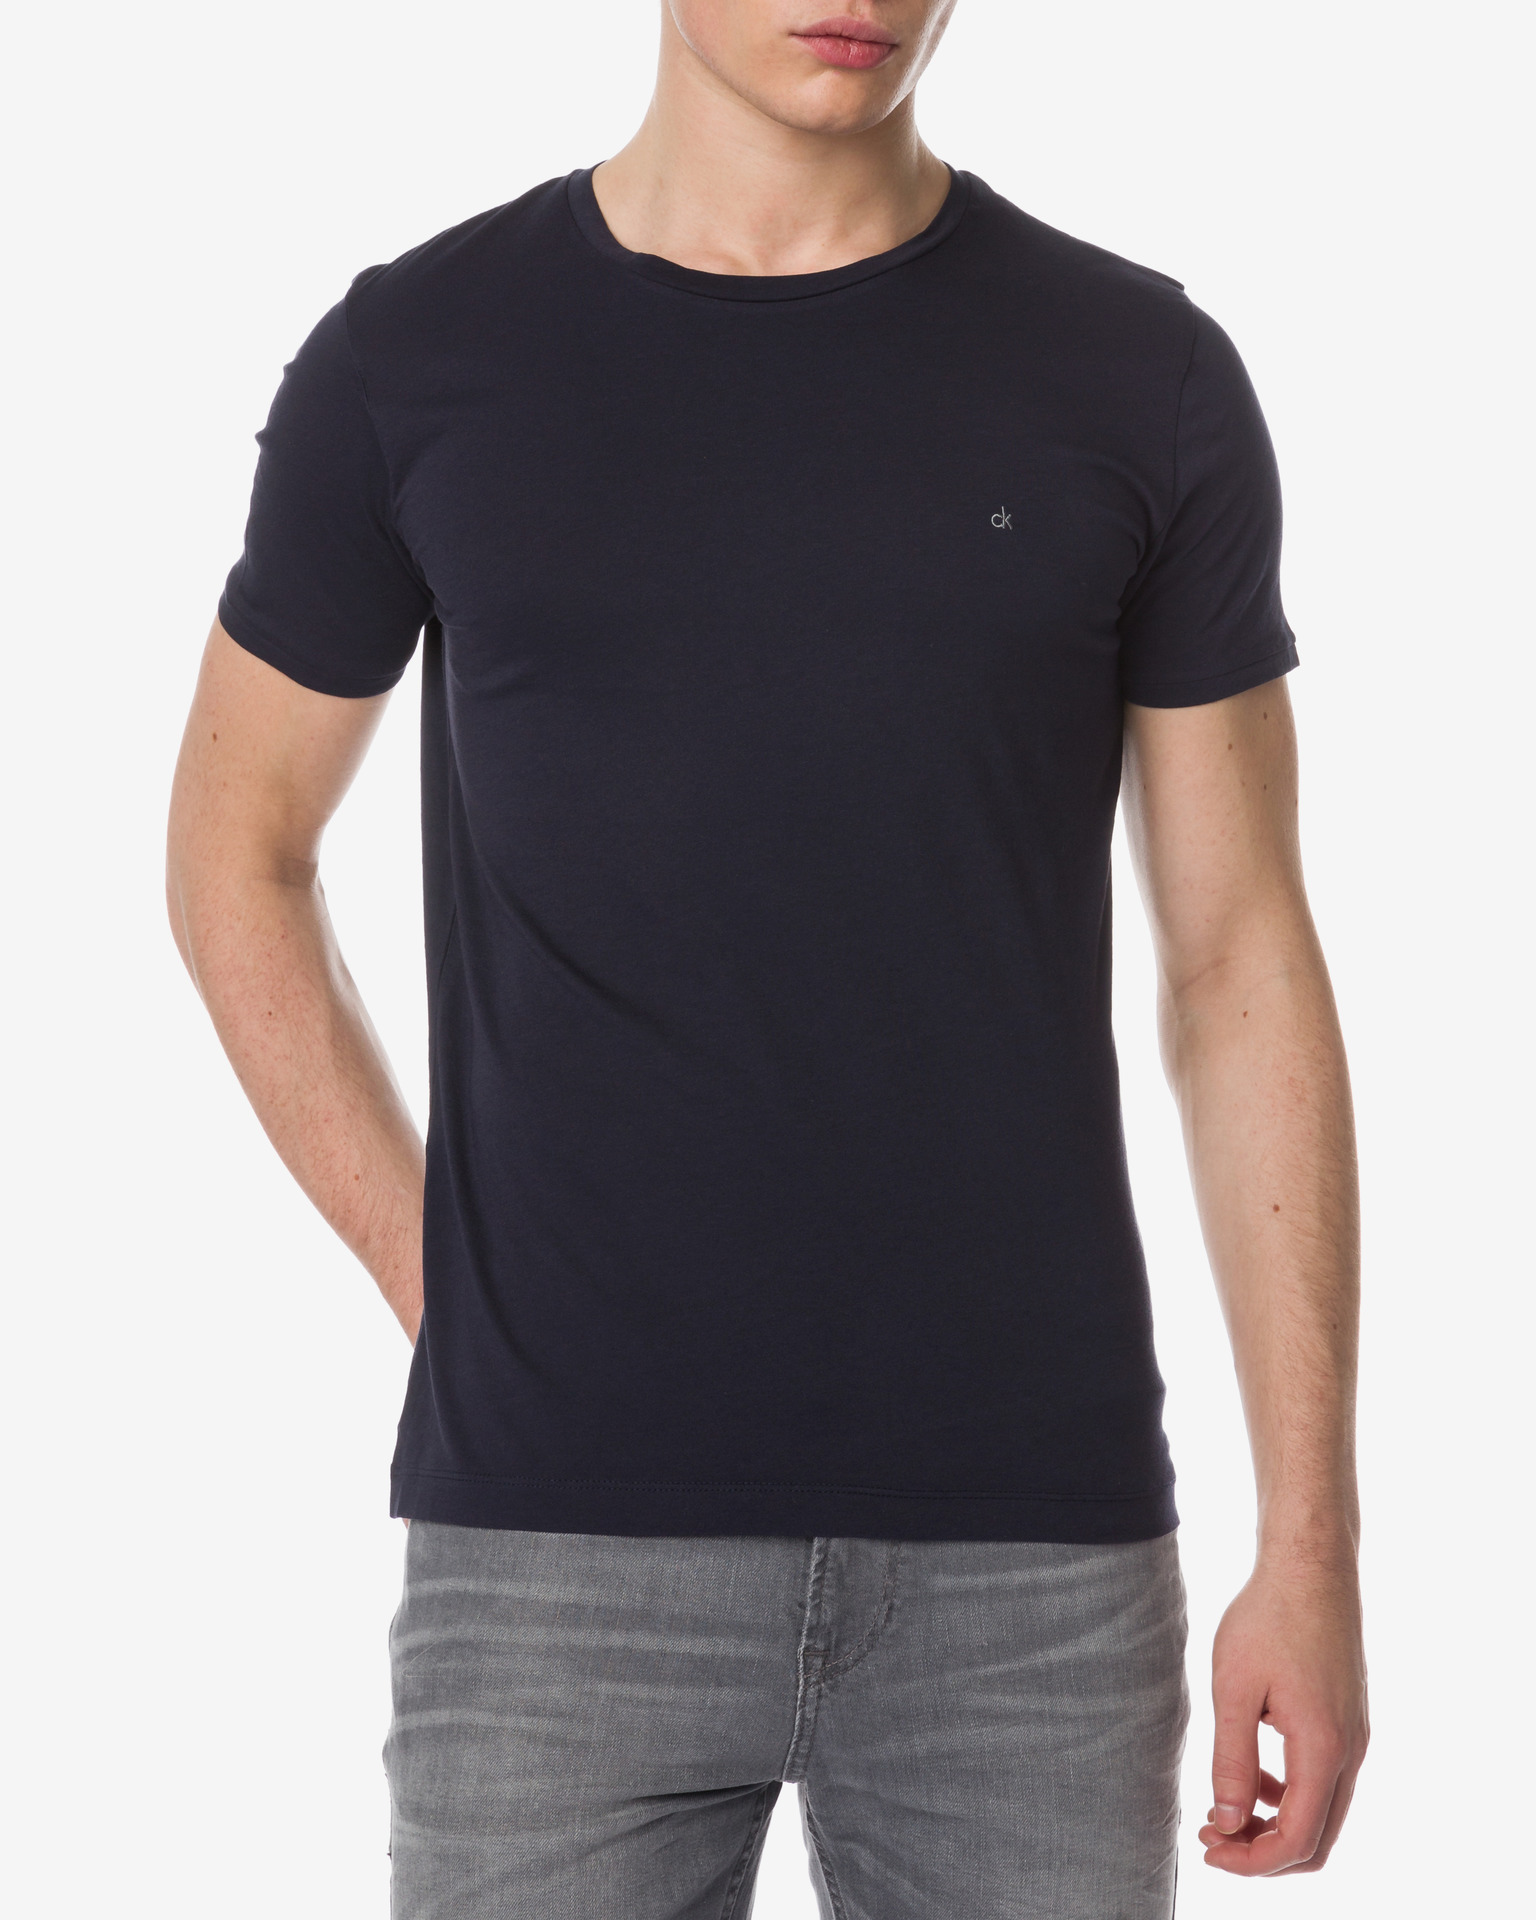 calvin klein t shirt herren regular logo t shirt night sky ck jeans t shirts main image calvin. Black Bedroom Furniture Sets. Home Design Ideas